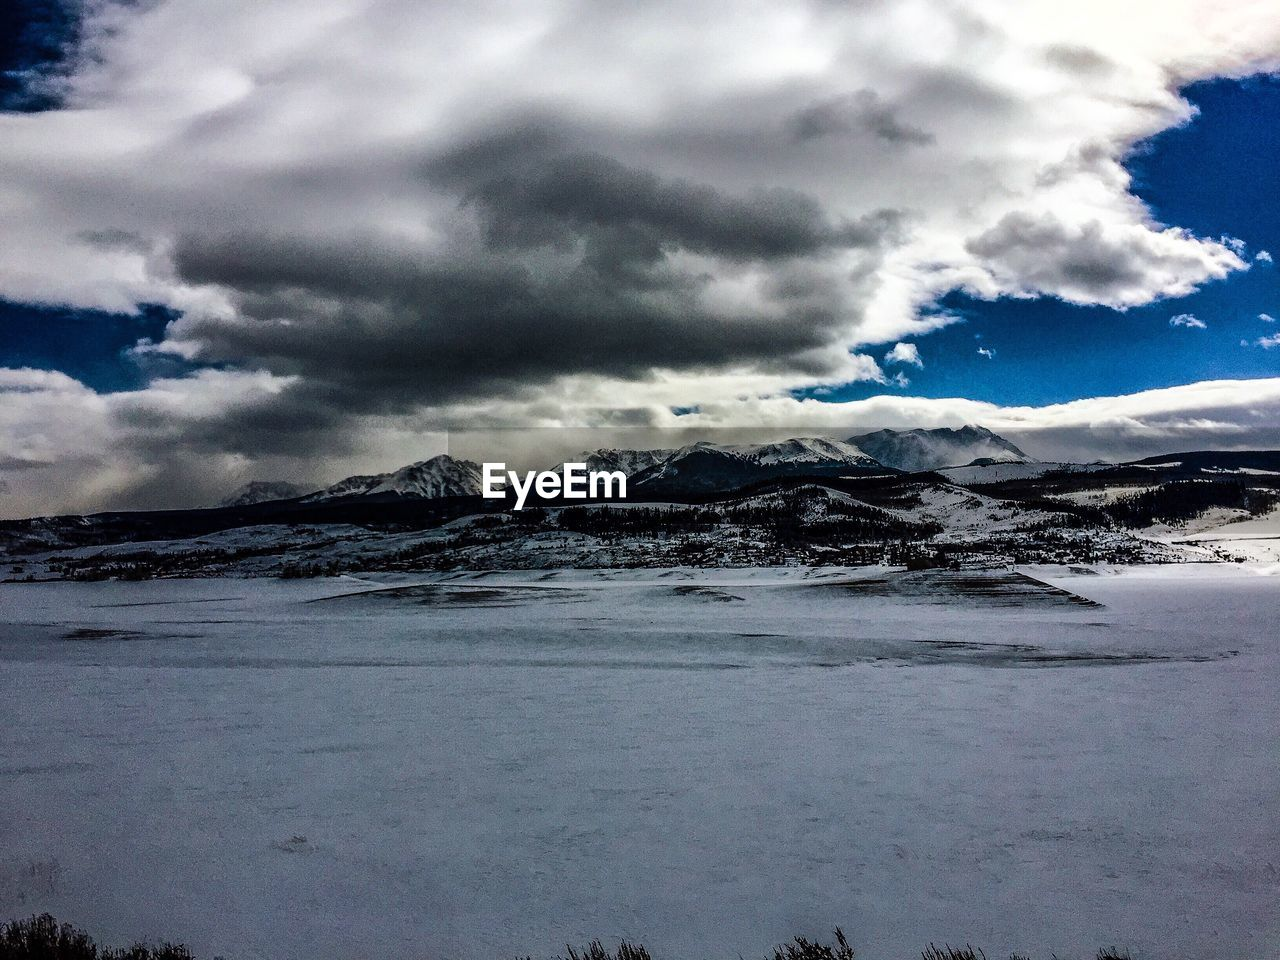 cloud - sky, sky, beauty in nature, scenics - nature, mountain, tranquil scene, cold temperature, snow, winter, environment, tranquility, day, no people, nature, landscape, non-urban scene, snowcapped mountain, outdoors, mountain range